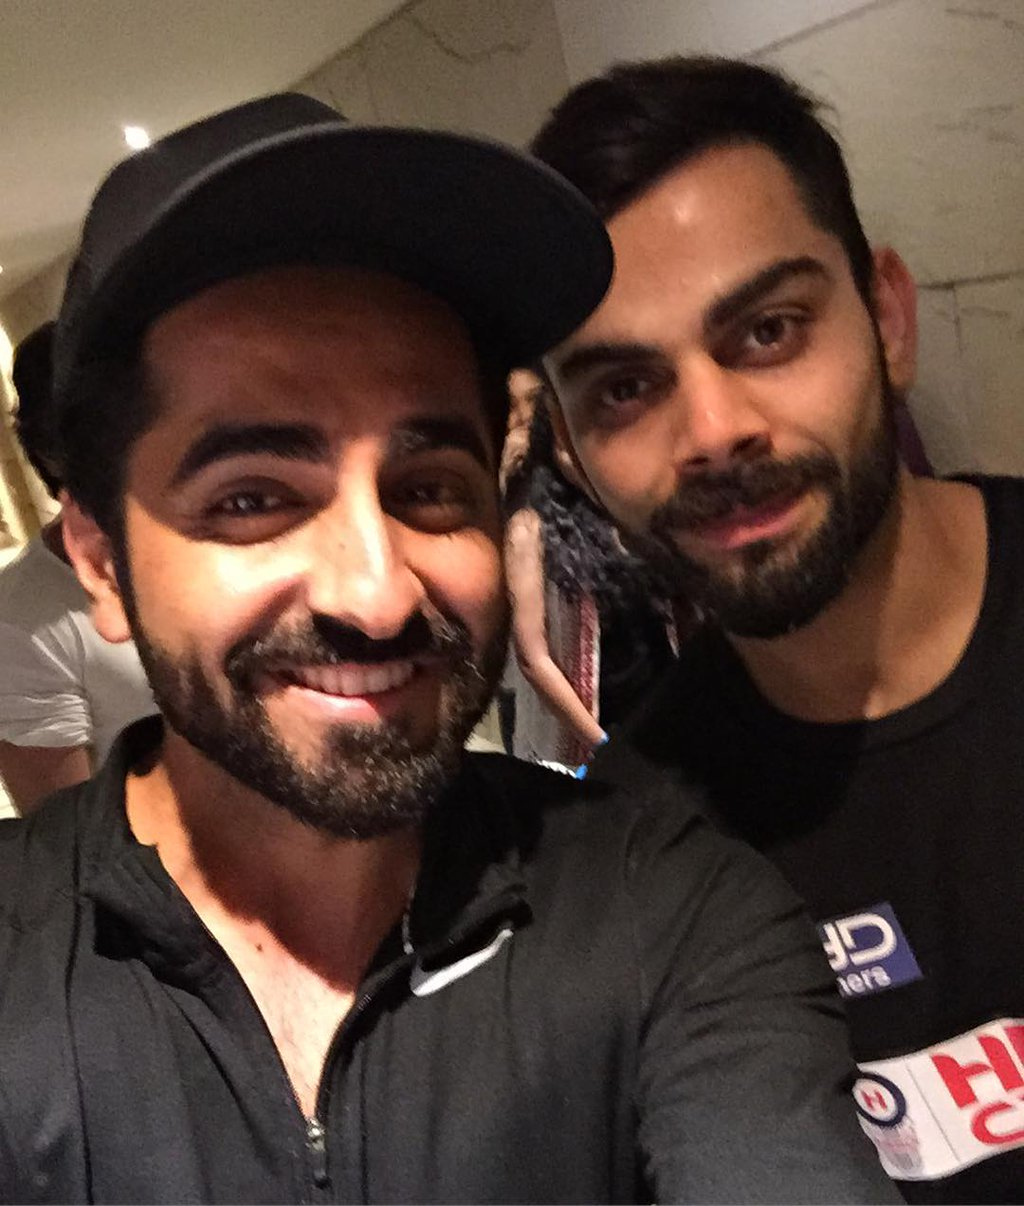 Selfie Time! - Ayushman Khurana with Virat Kohli, Dwayne Johnson with Priyanka Chopra and Raj Kundra